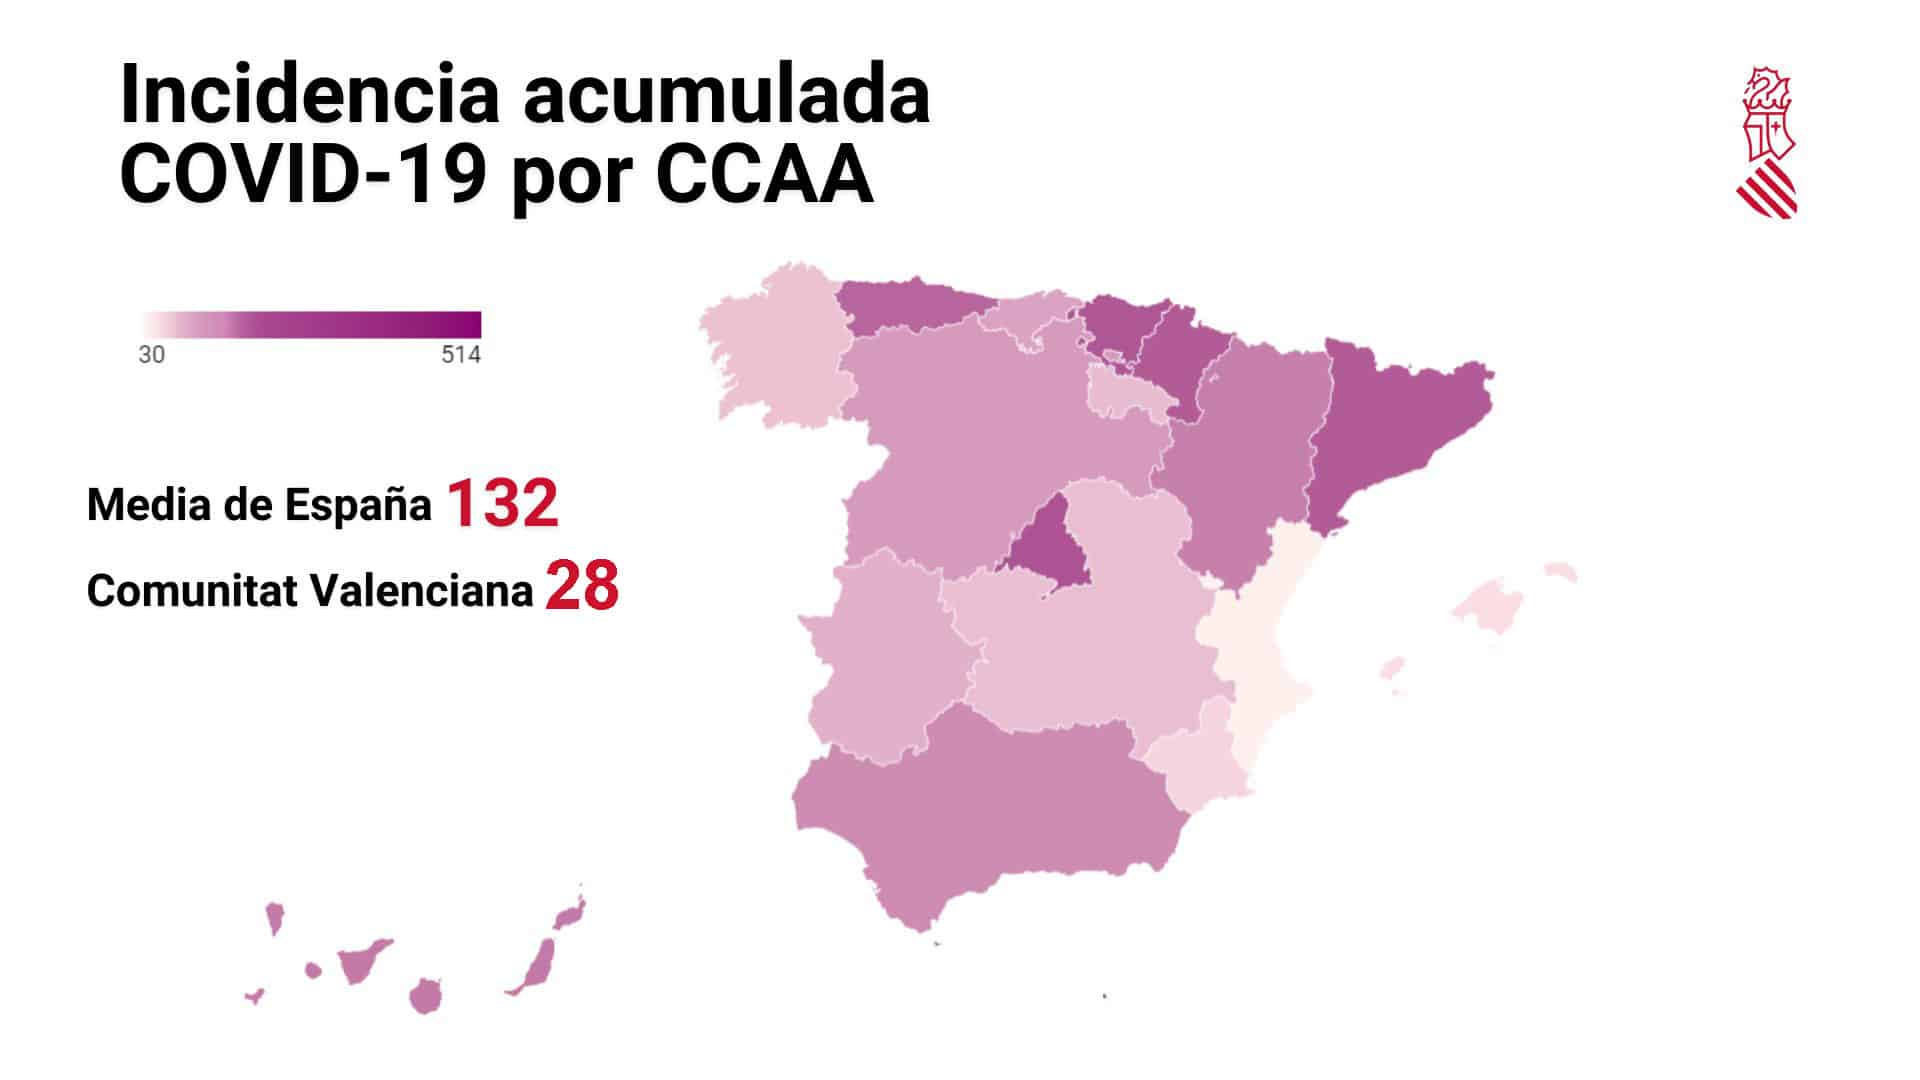 Reported incidents of Coronavirus in the Valencian Community